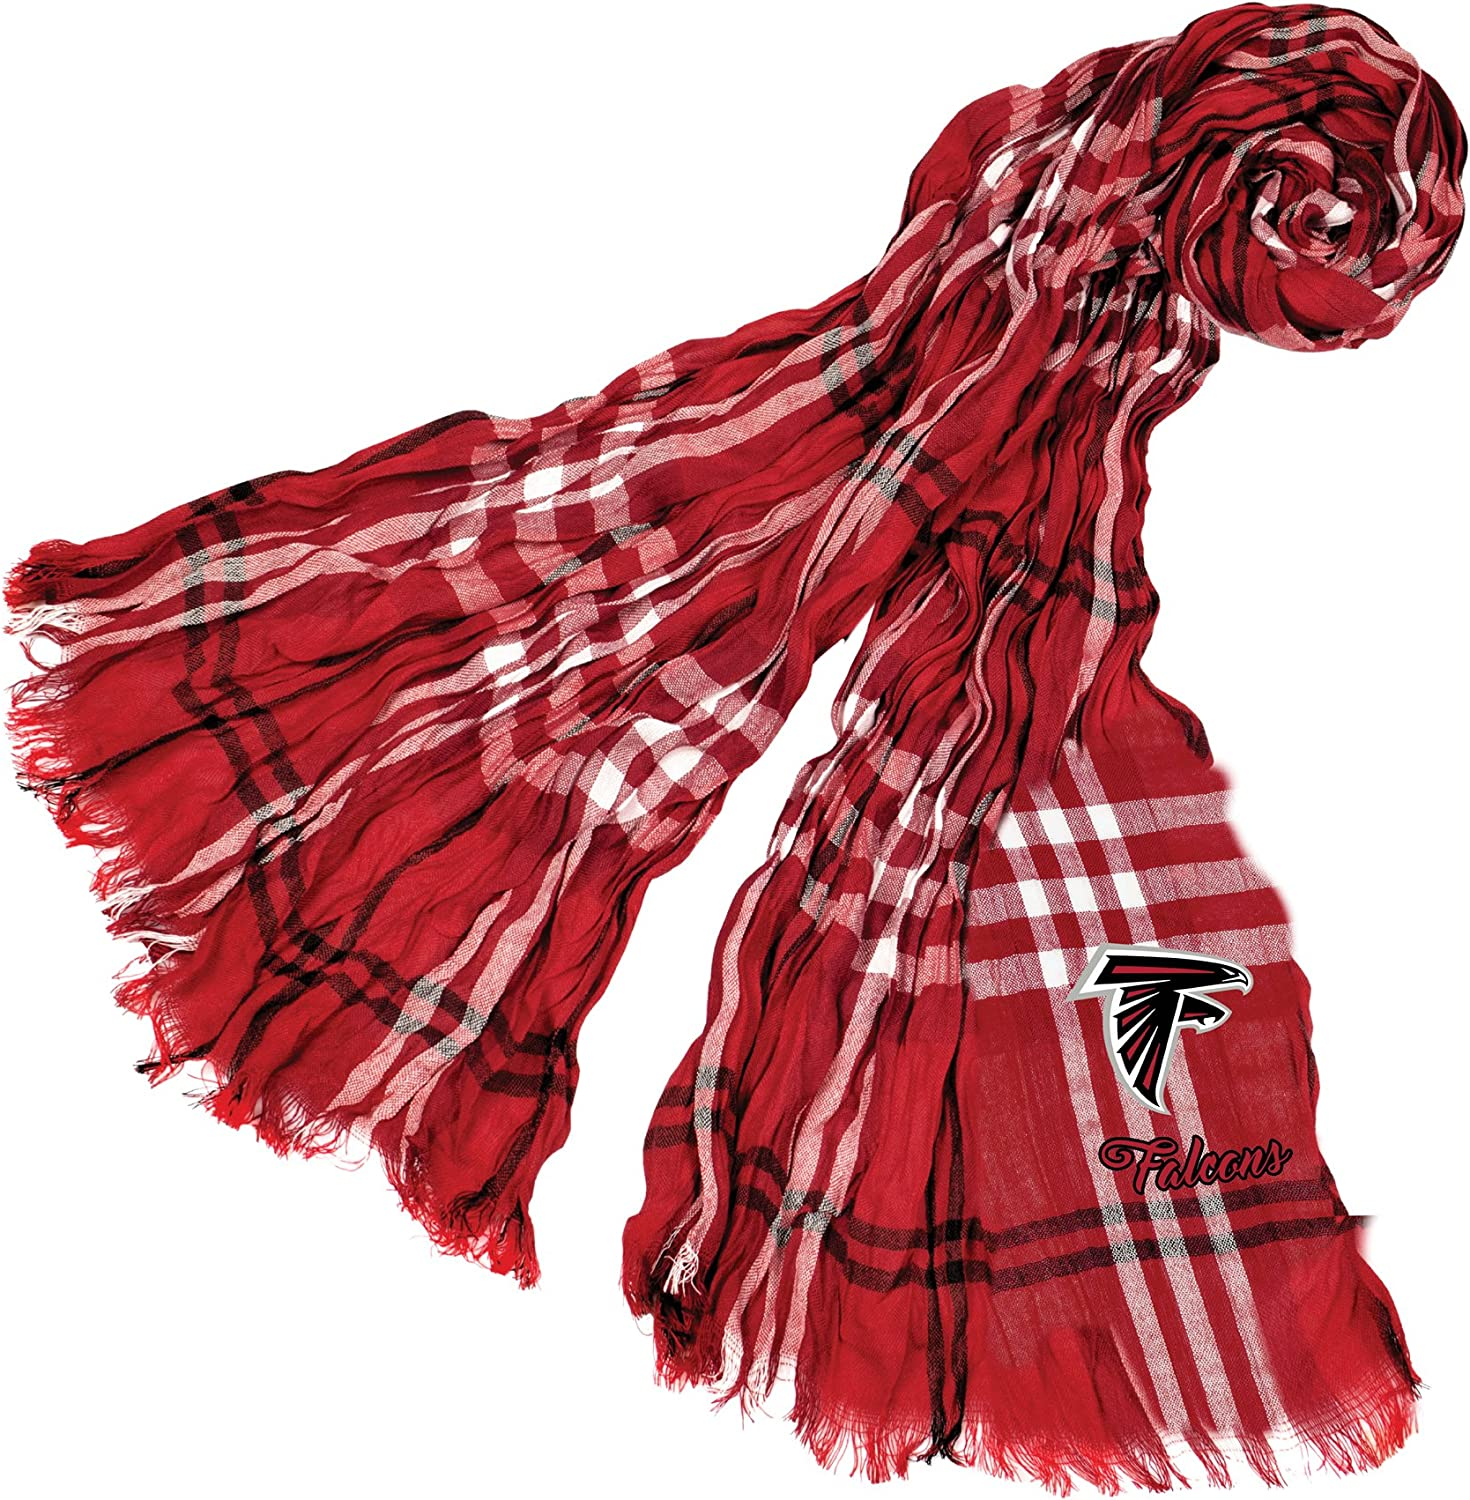 Challenge the lowest price of Japan ☆ Littlearth NFL unisex-adult Scarf Quality inspection Crinkle Plaid